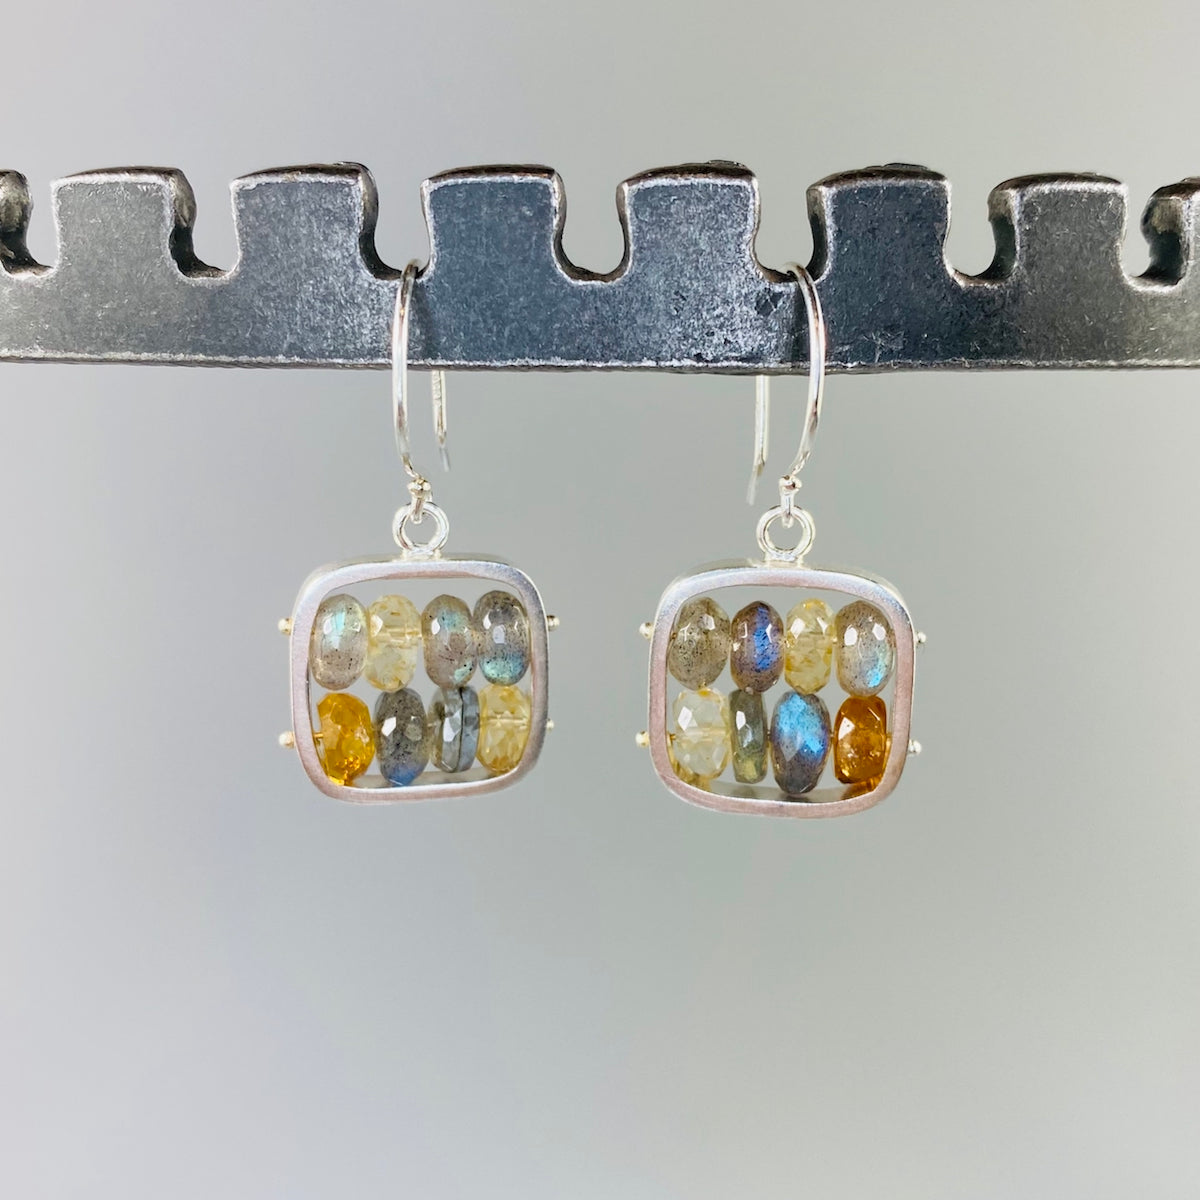 Tapestry Earrings in Labradorite & Honey - Heart of the Home PA